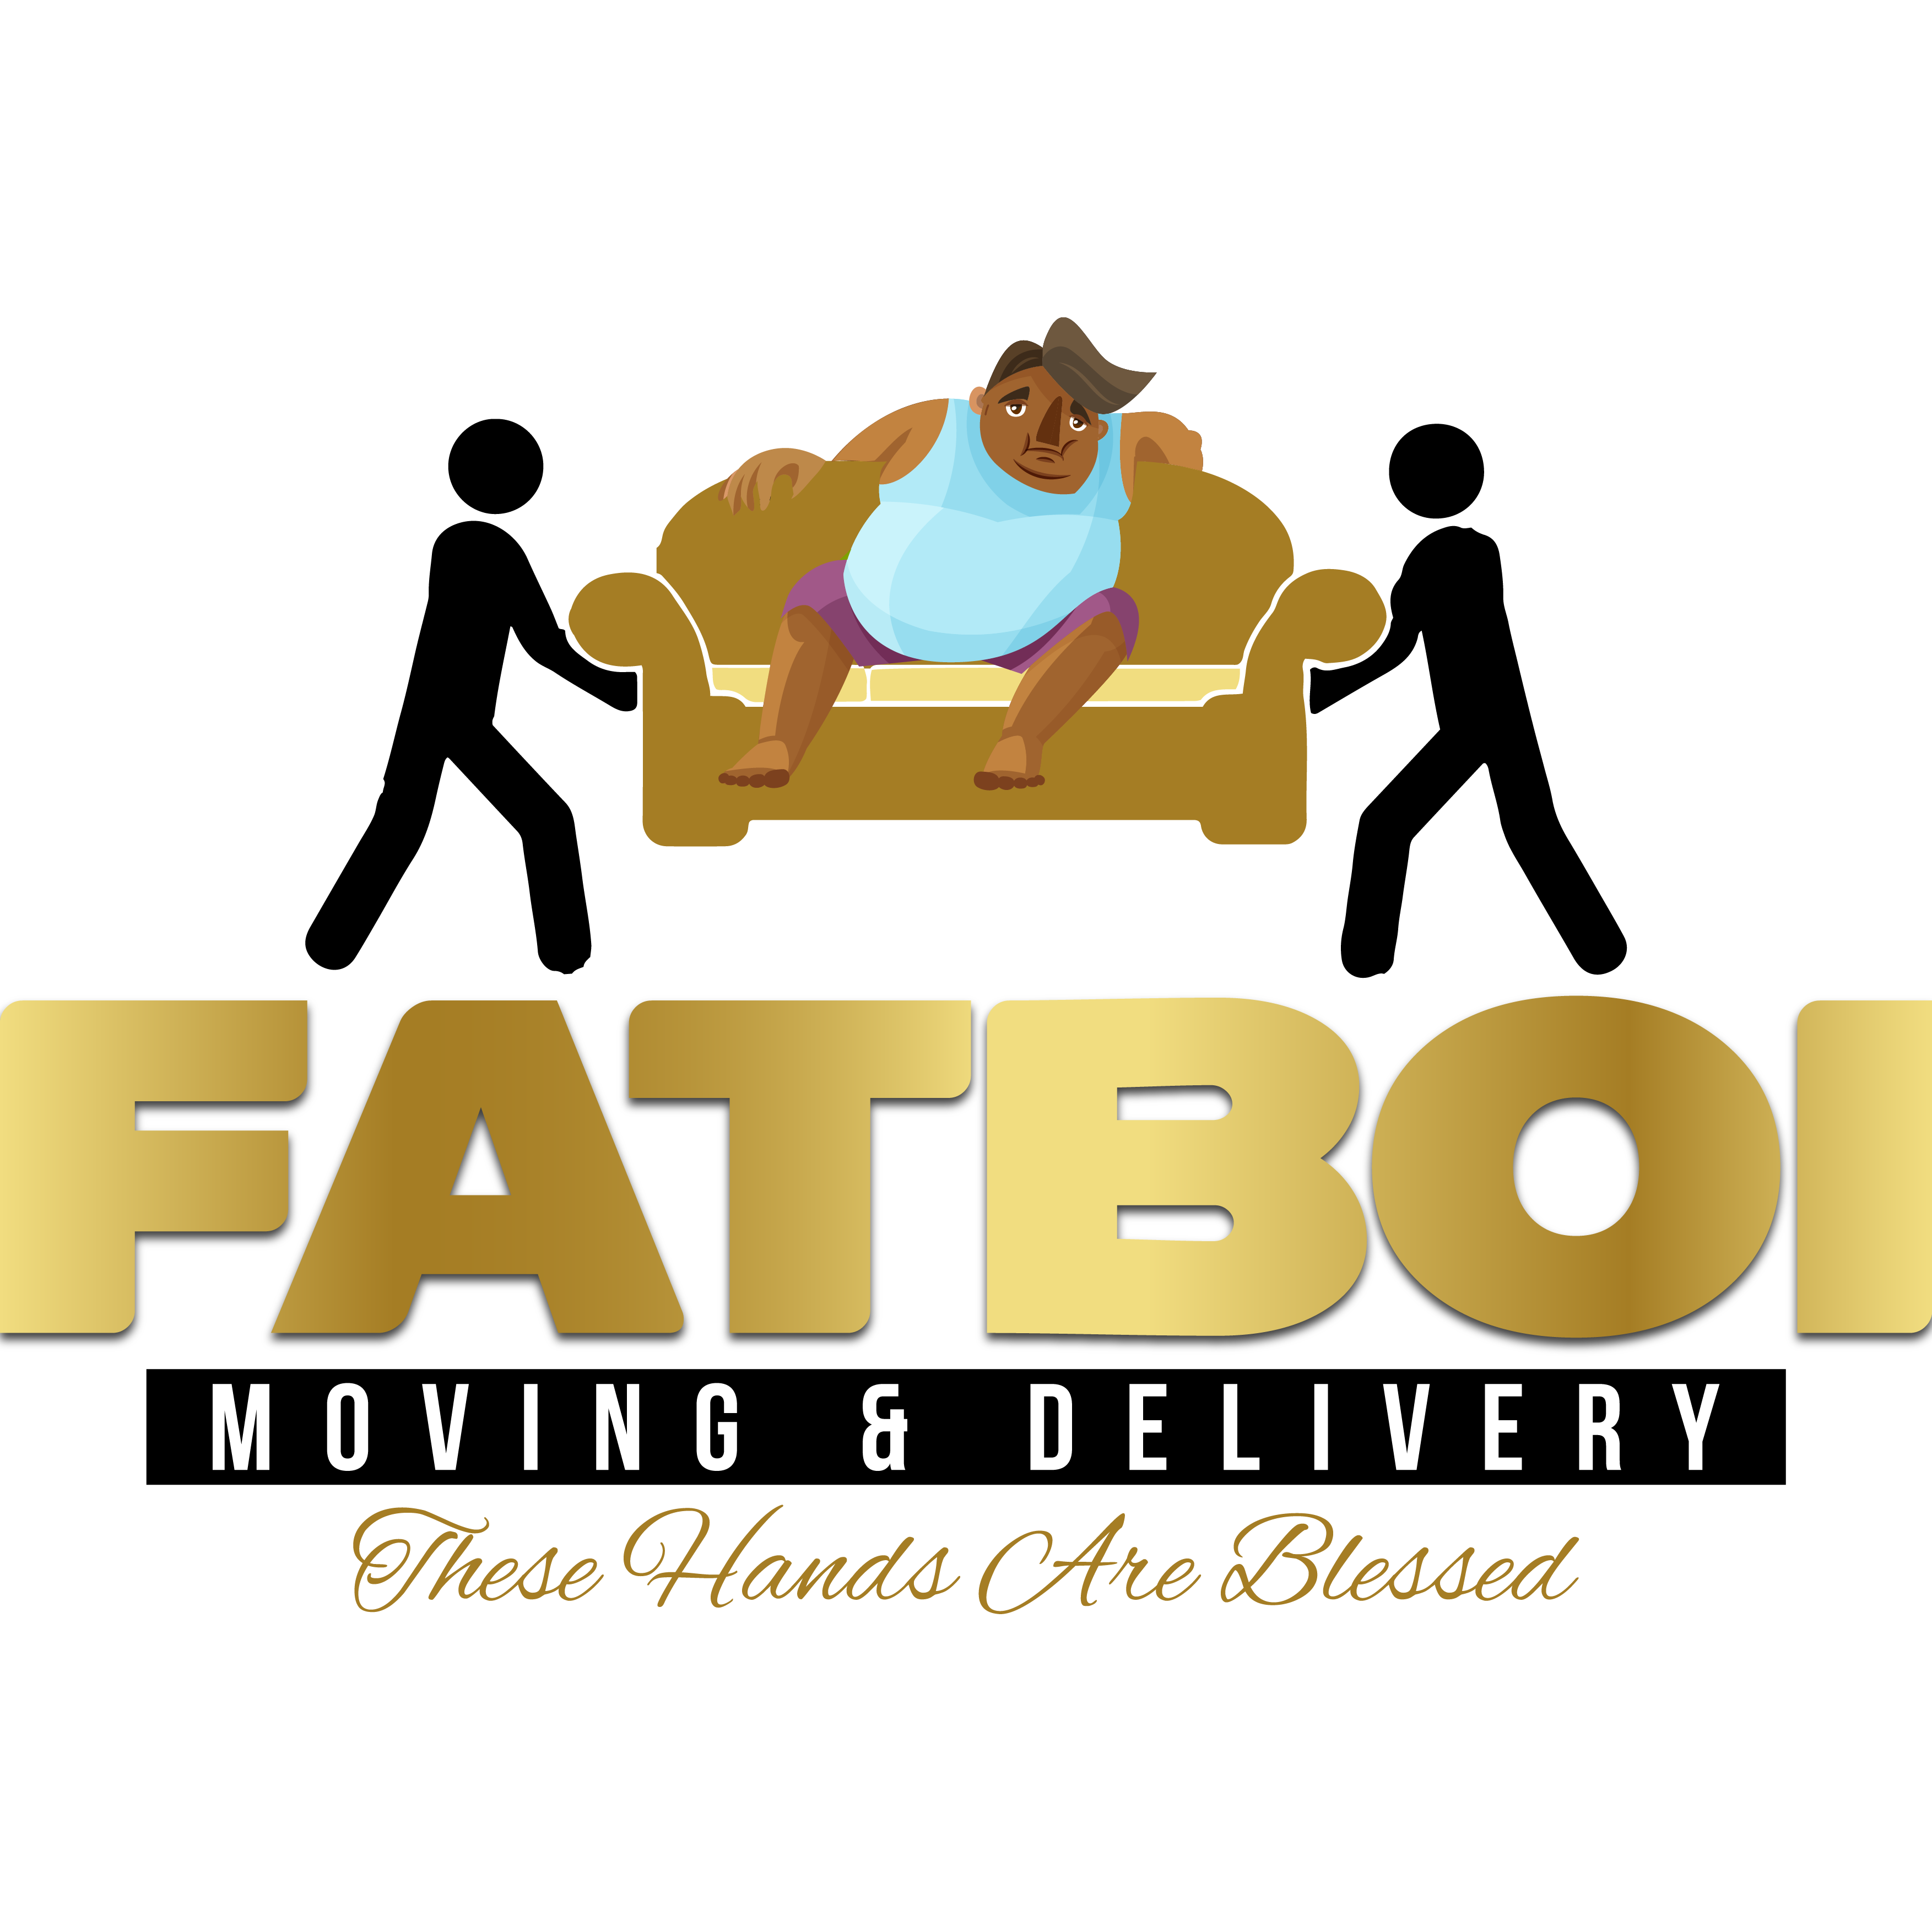 FatBoi Moving and Delivery